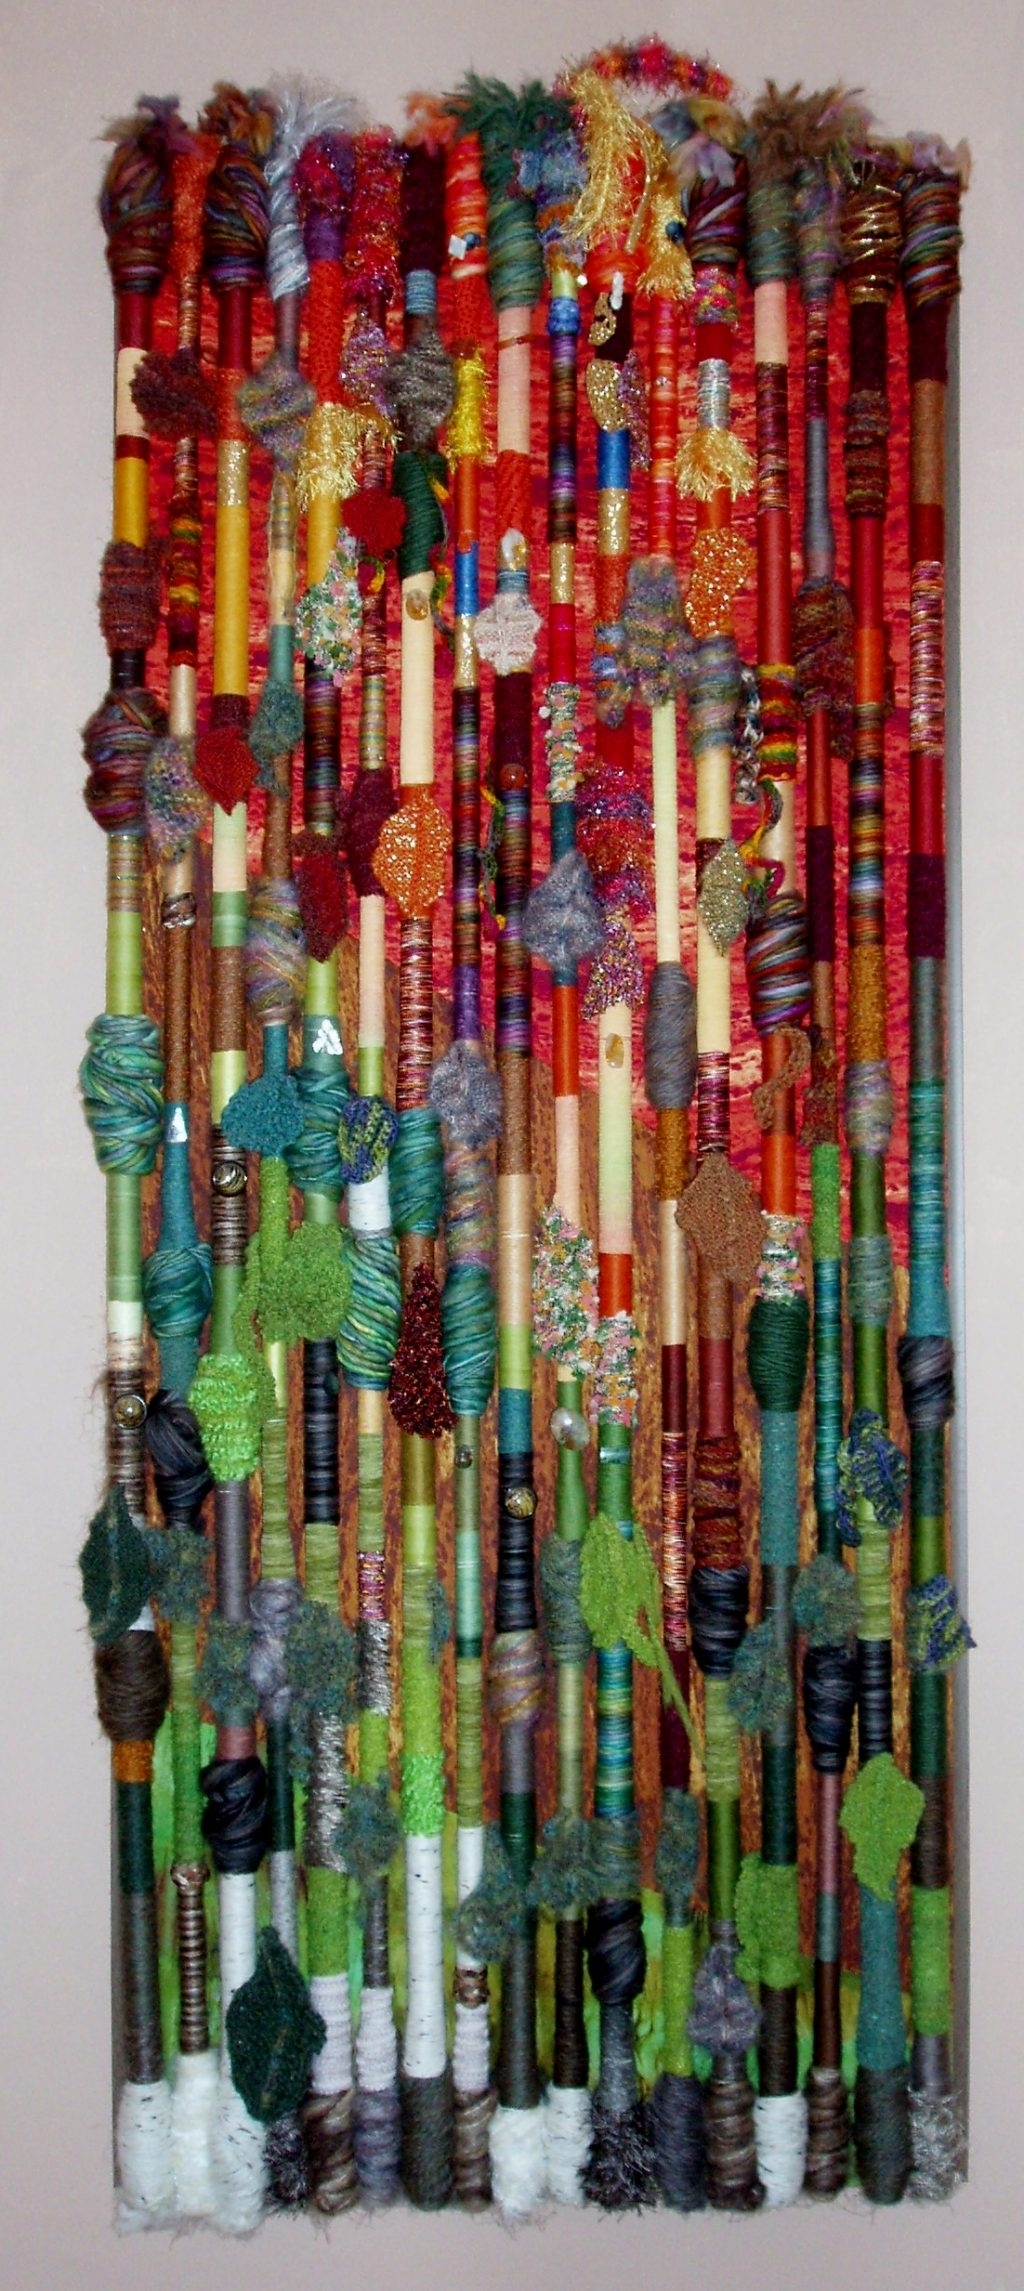 Inspirational Design Ideas Textile Wall Hangings With Fiber Art Intended For 2018 Fabric Wall Hangings Art (View 10 of 15)